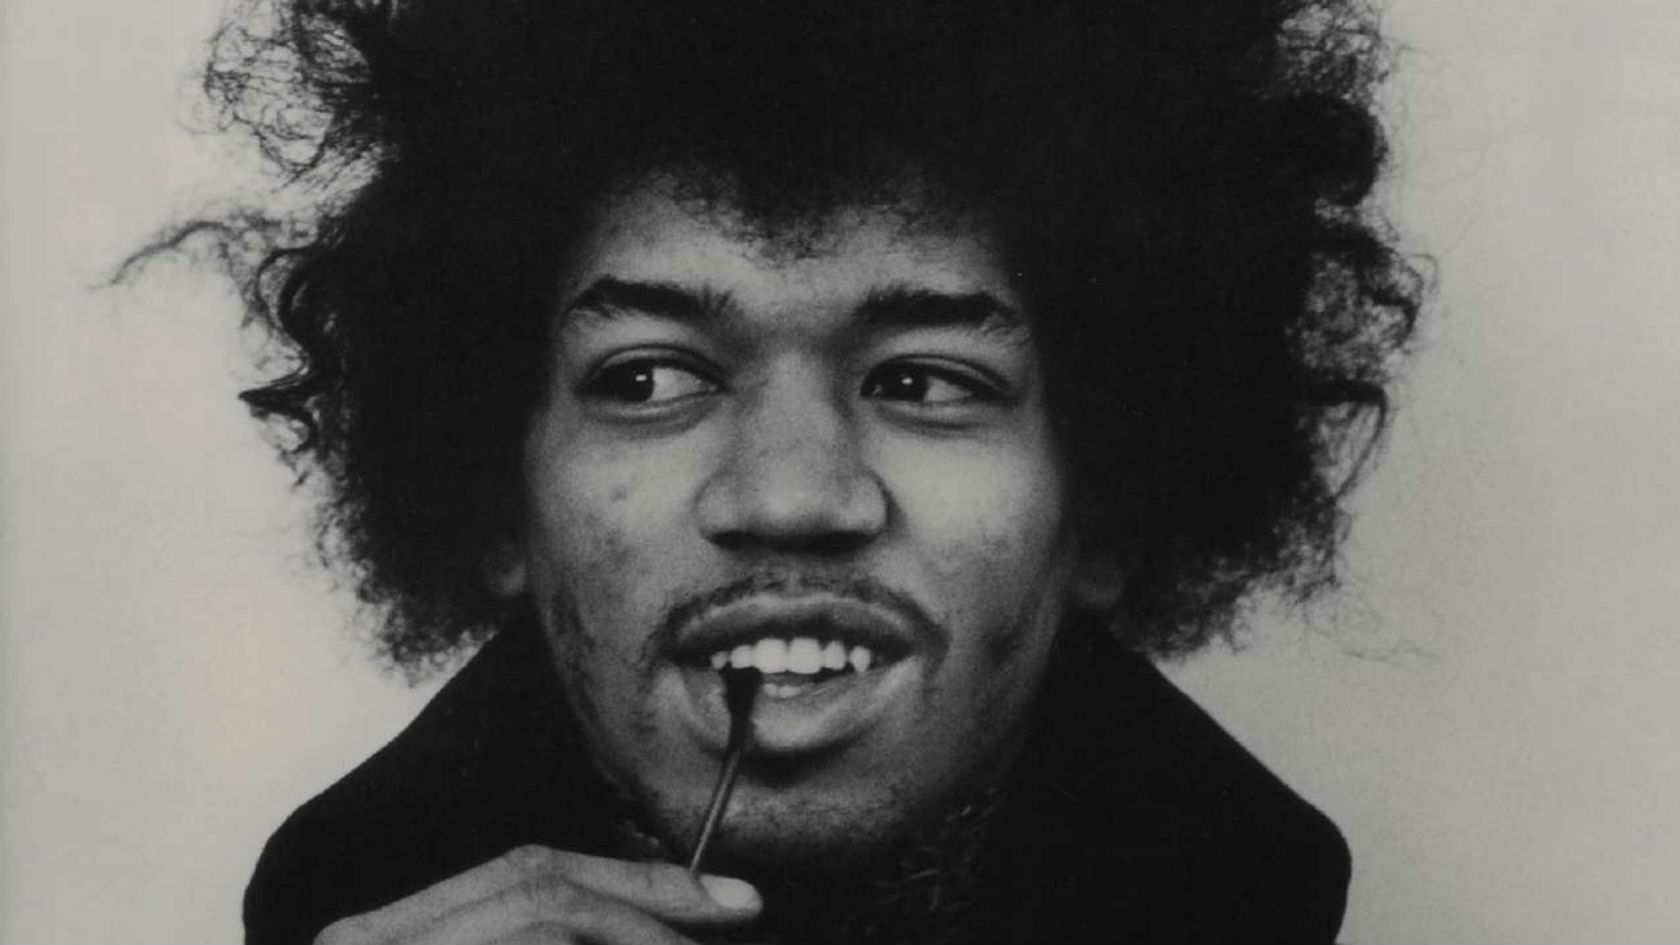 the music career and influence of jimi hendrix